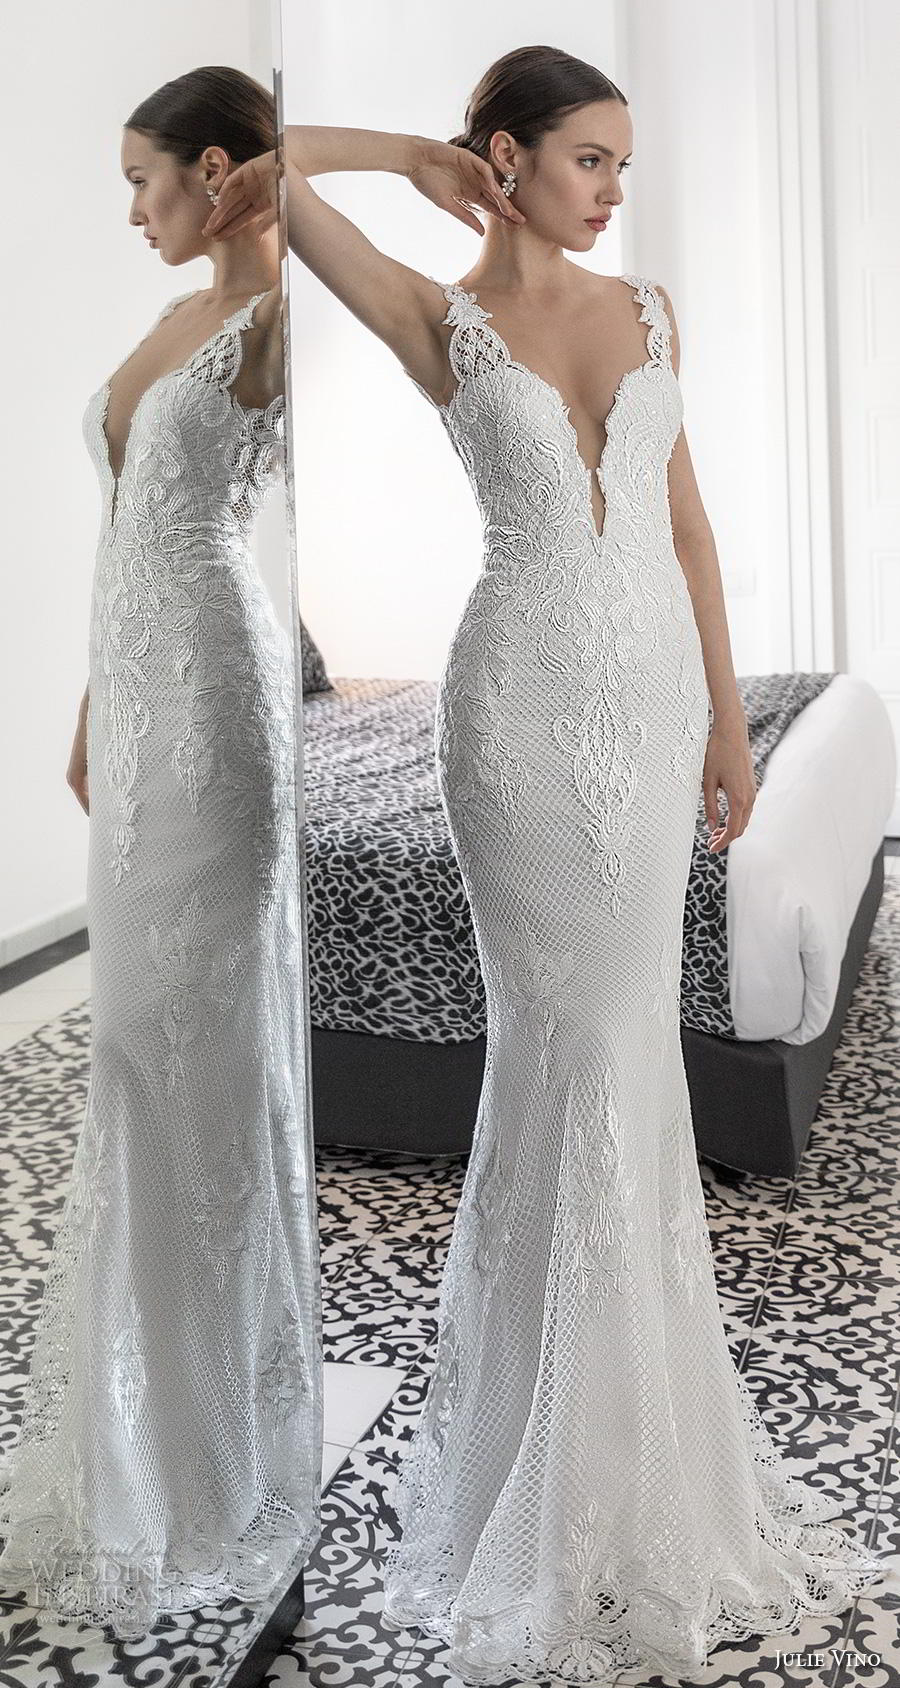 julie vino 2020 romanzo bridal embroidered strap deep plunging sweetheart neckline heavily embellished bodice elegant sexy fit and flare wedding dress  backless low back sweep train (6) mv